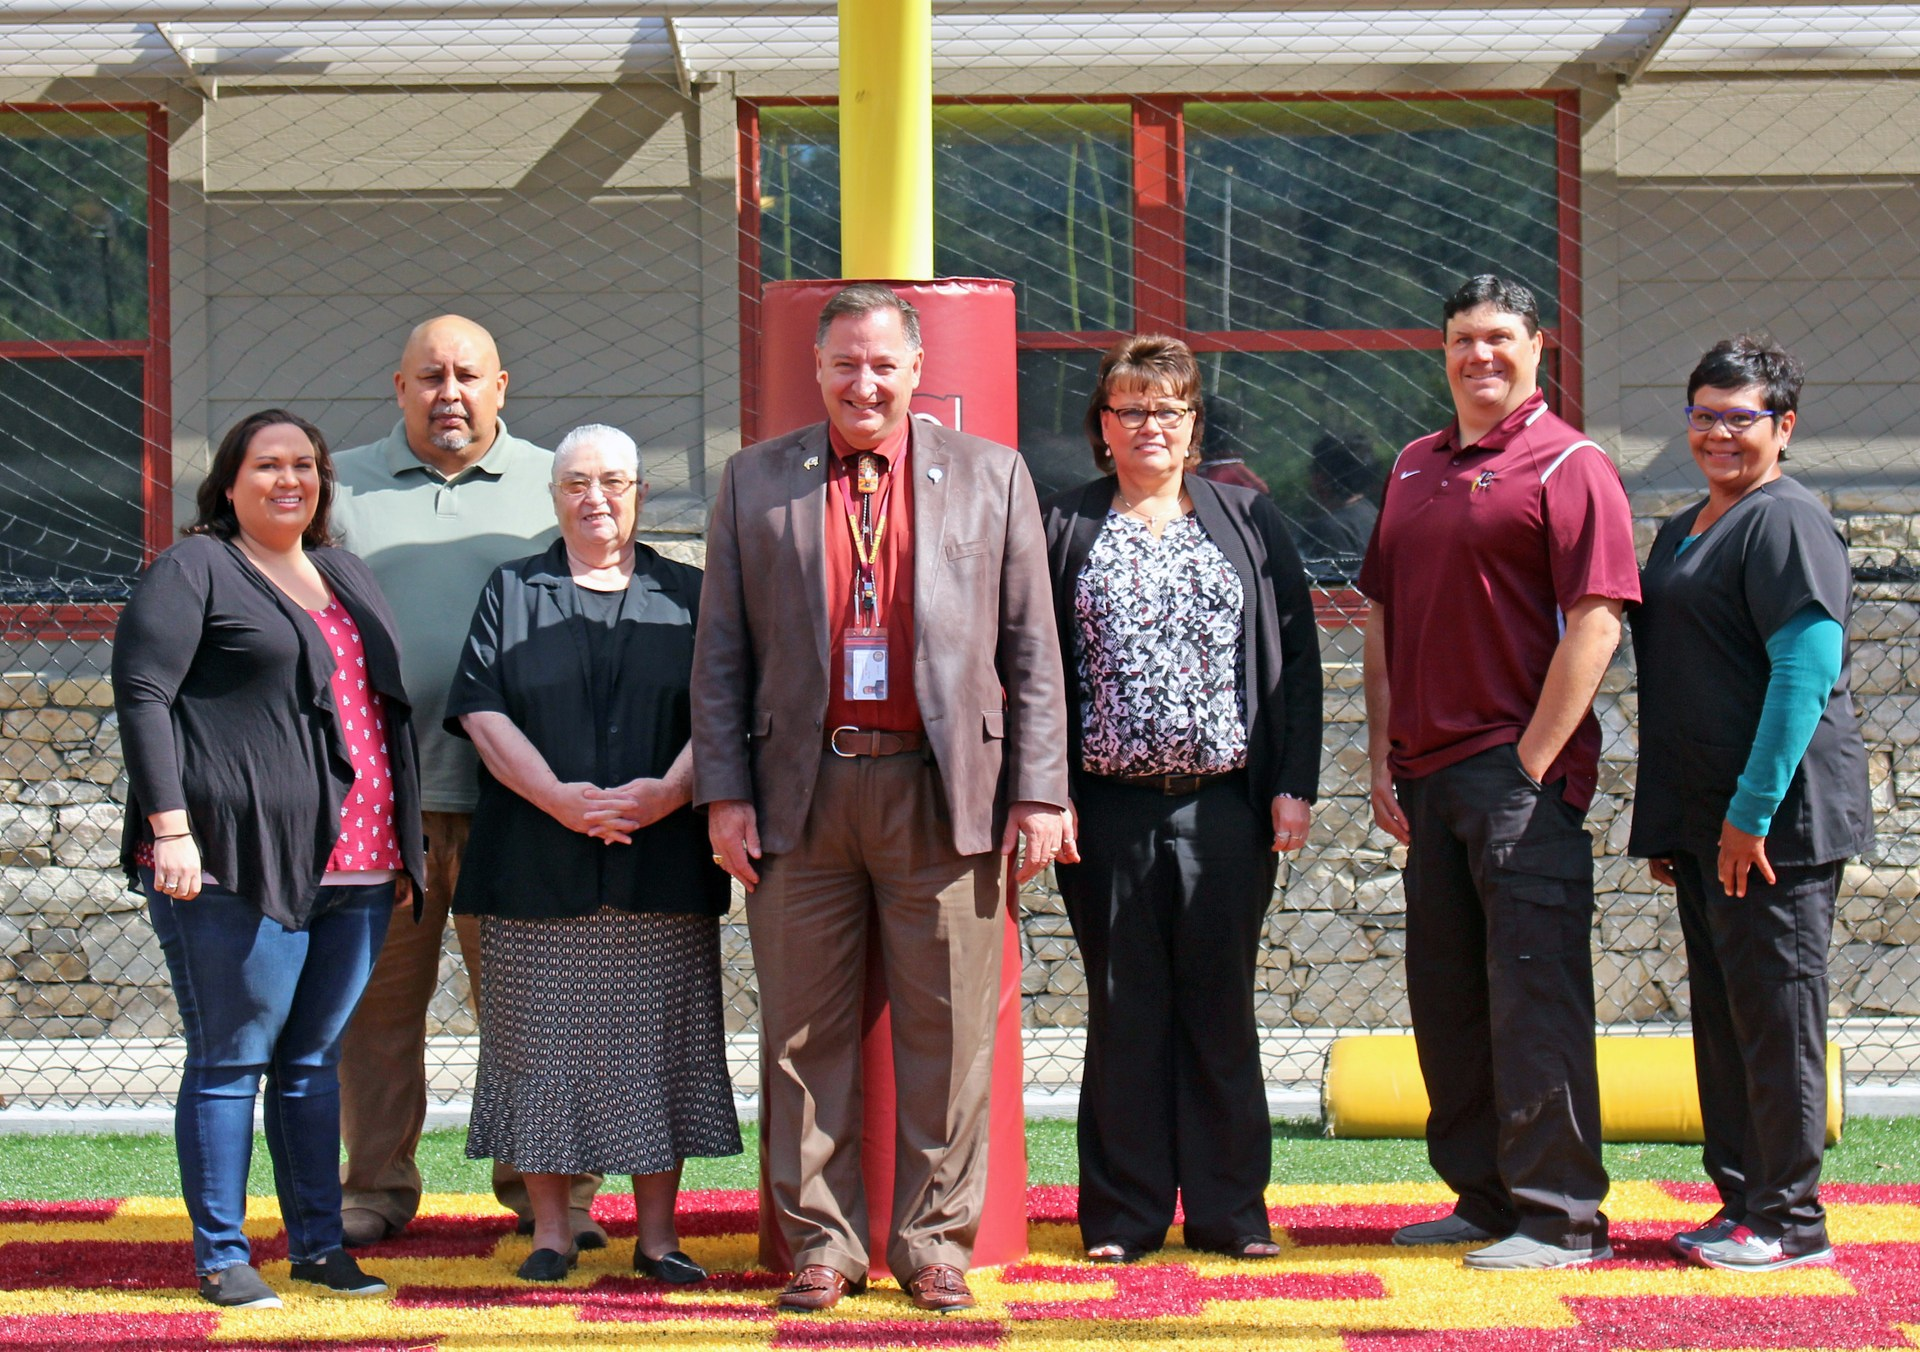 School Board Officials (Left to Right): Jennifer Thompson, Yellowhill; Isaac Long, Wolfetown; Karen French-Browning, Big Cove; Dr. Mike Murray, Superintendent; Gloria Griffin, Birdtown; John Crowe, Big-Y; and Charlotte Saunooke, Painttown.